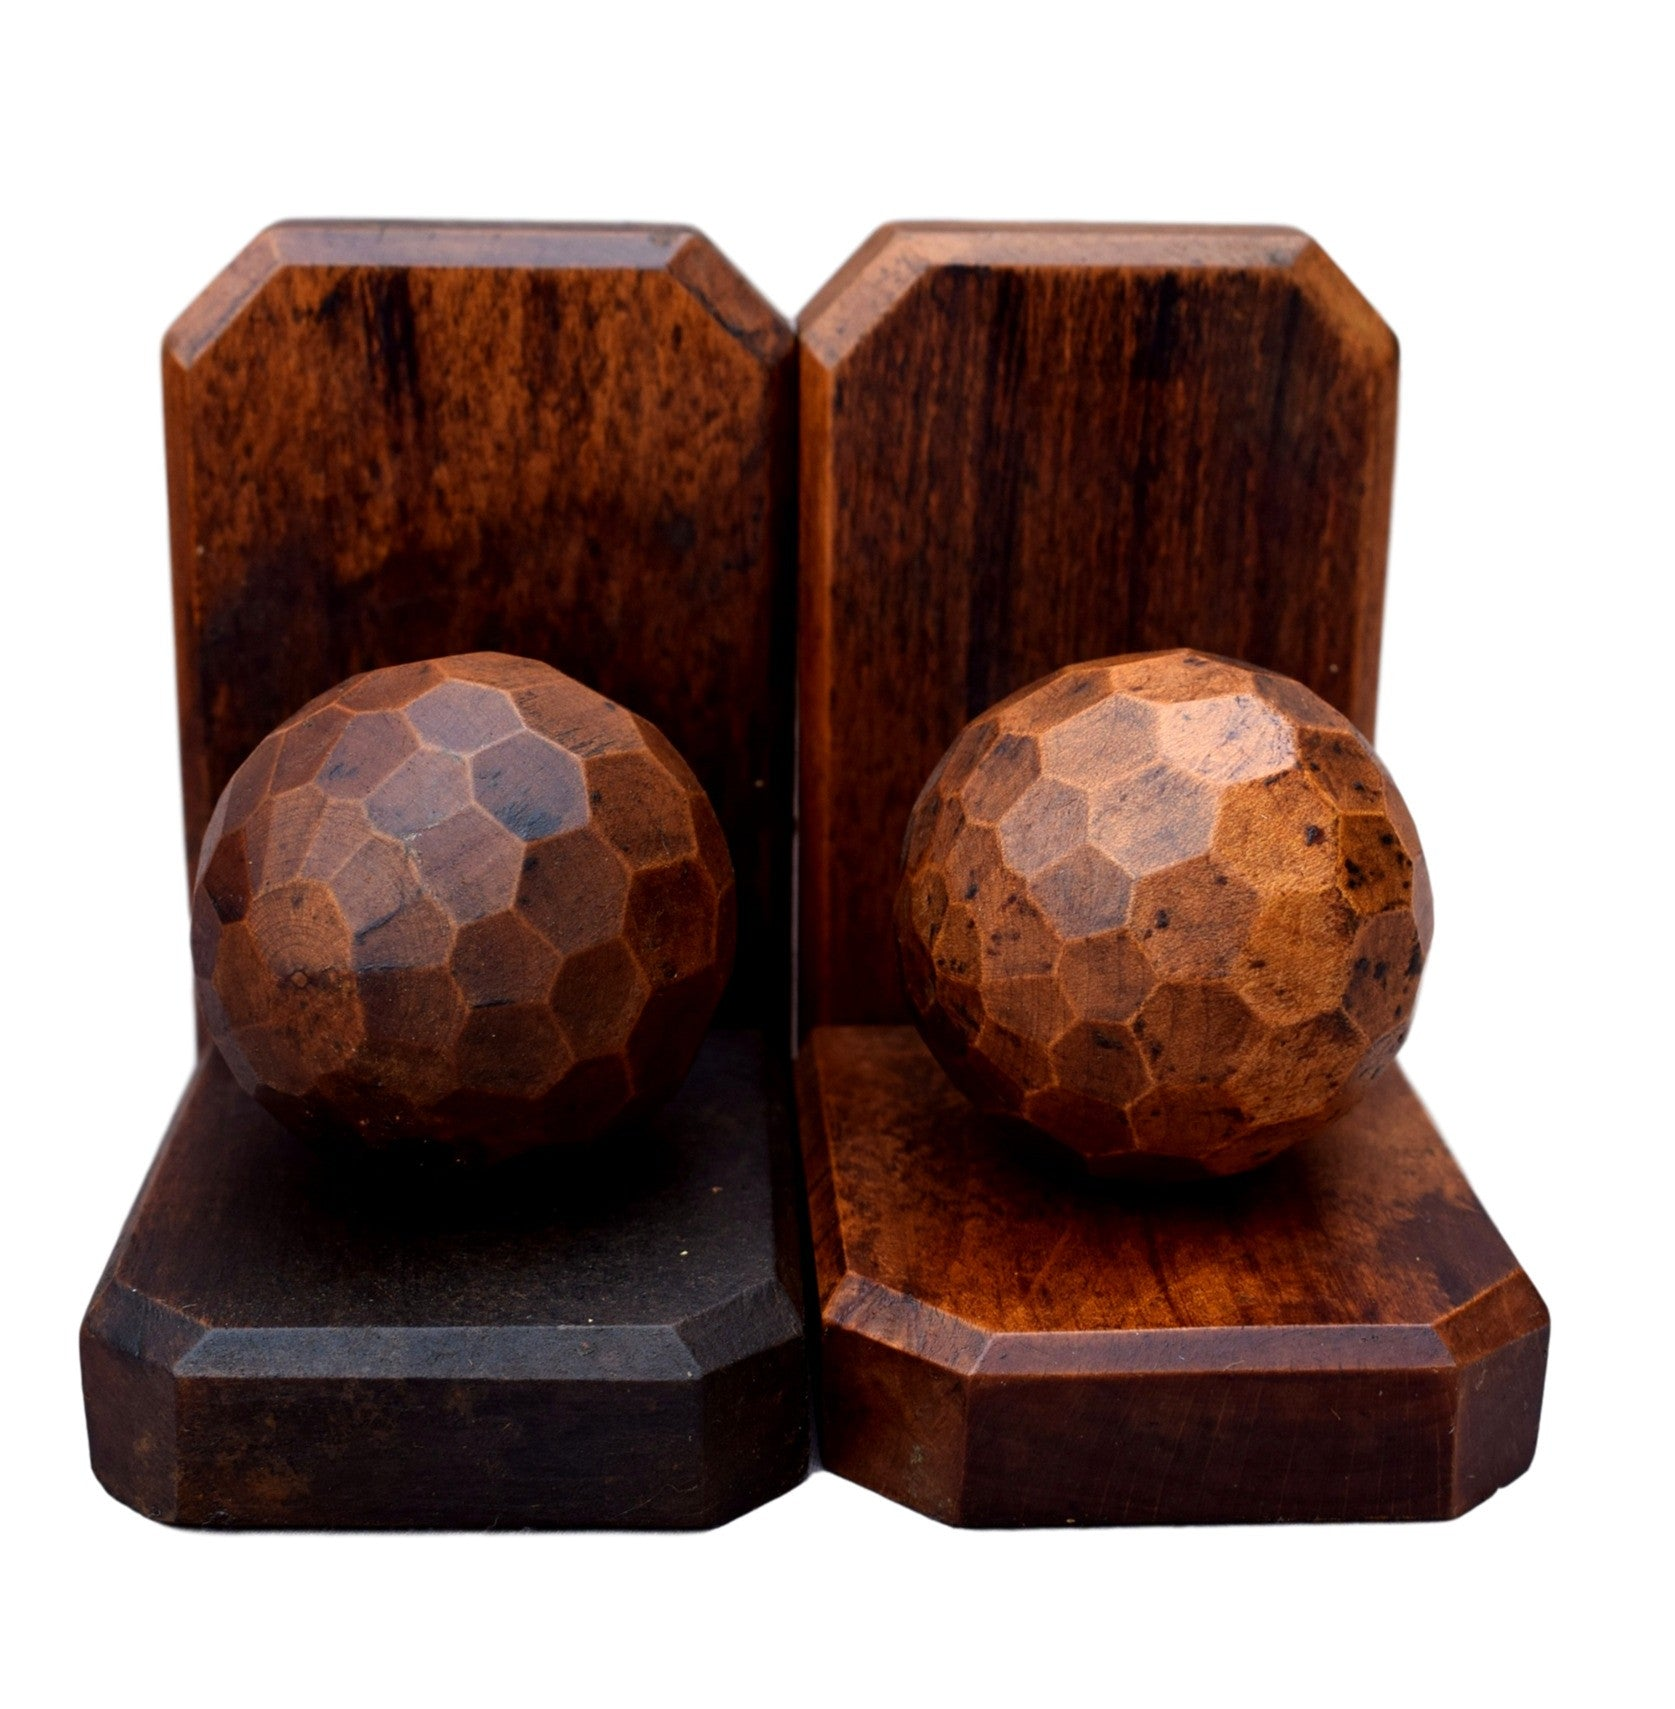 French Vintage World Globe Pair Bookends - Small Faceted Ball Book Ends - Charmantiques